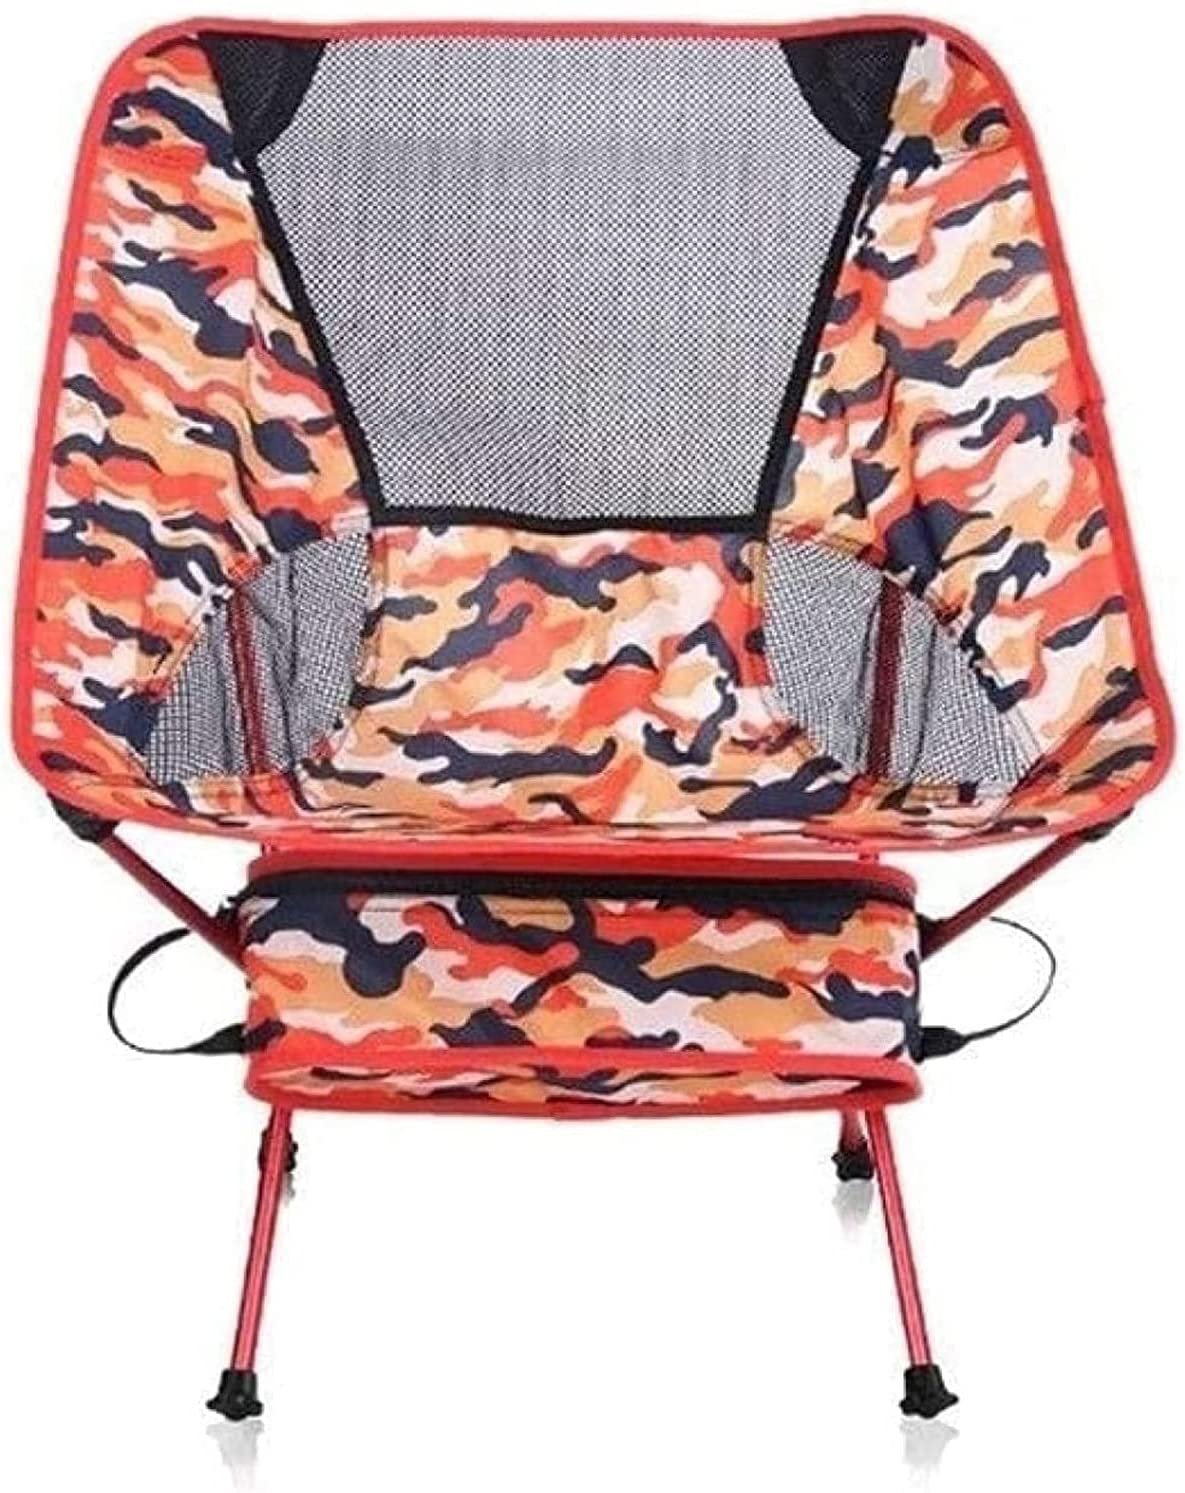 ZHJ Picnic OFFicial mail order Chair Camping Folding Fishing Outdoor Limited Special Price Ch